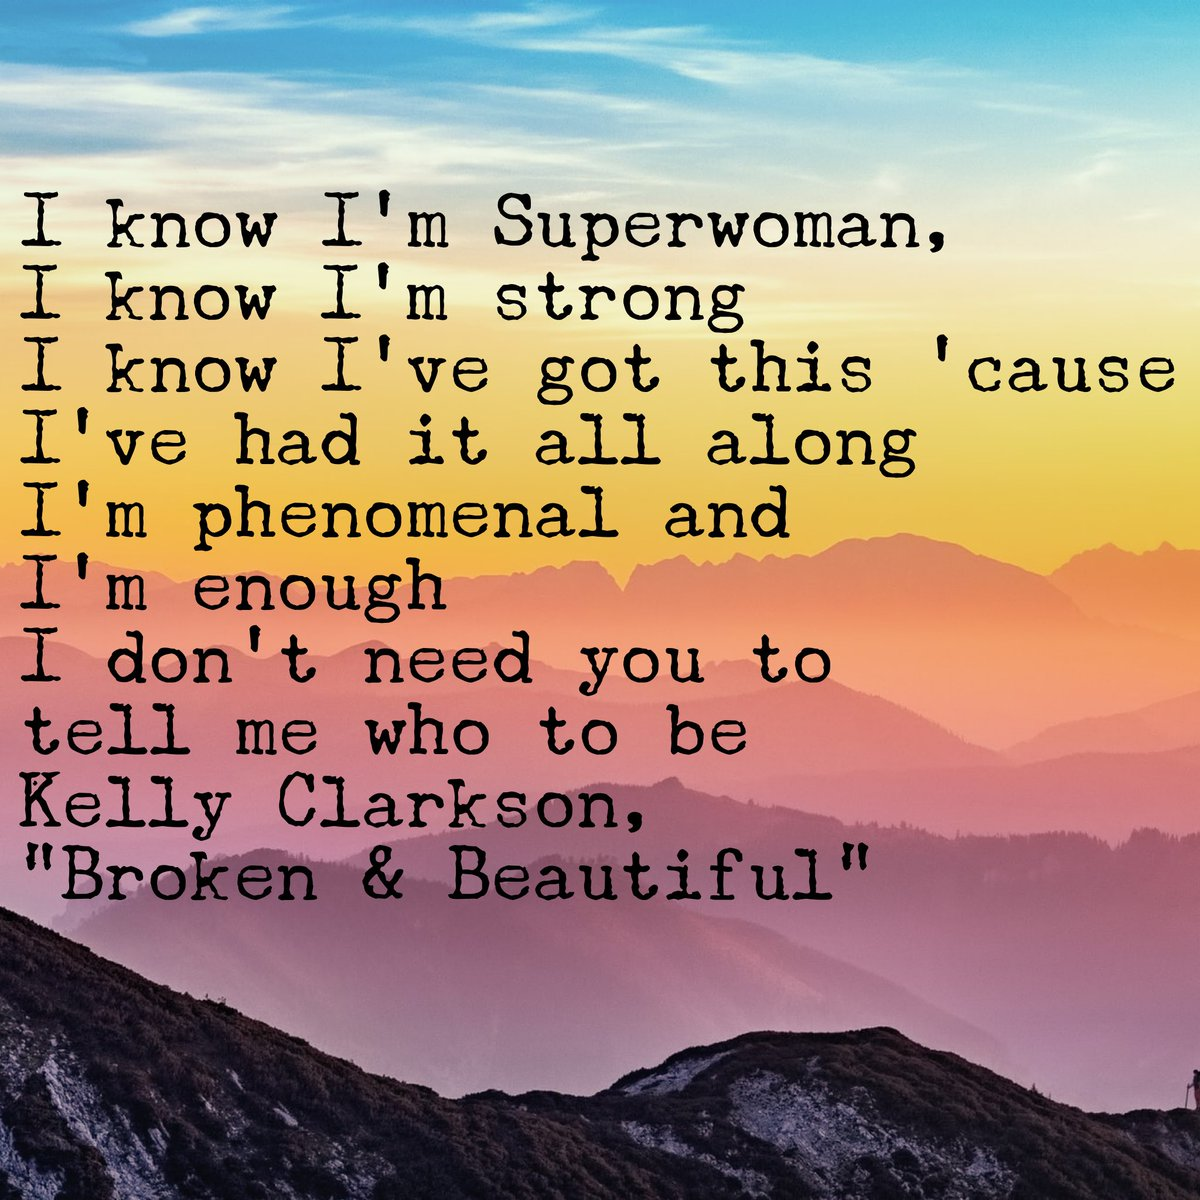 #quoteoftheday  Good morning! Here's another I listen to when I need a boost! I sing it at the top of my lungs & before I know it, I'm pumped. Do u have a power anthem u listen to? Share with us!  #quote #MondayMorning #MondayVibes #mentalhealth #WhyIShare #WeMatterToo